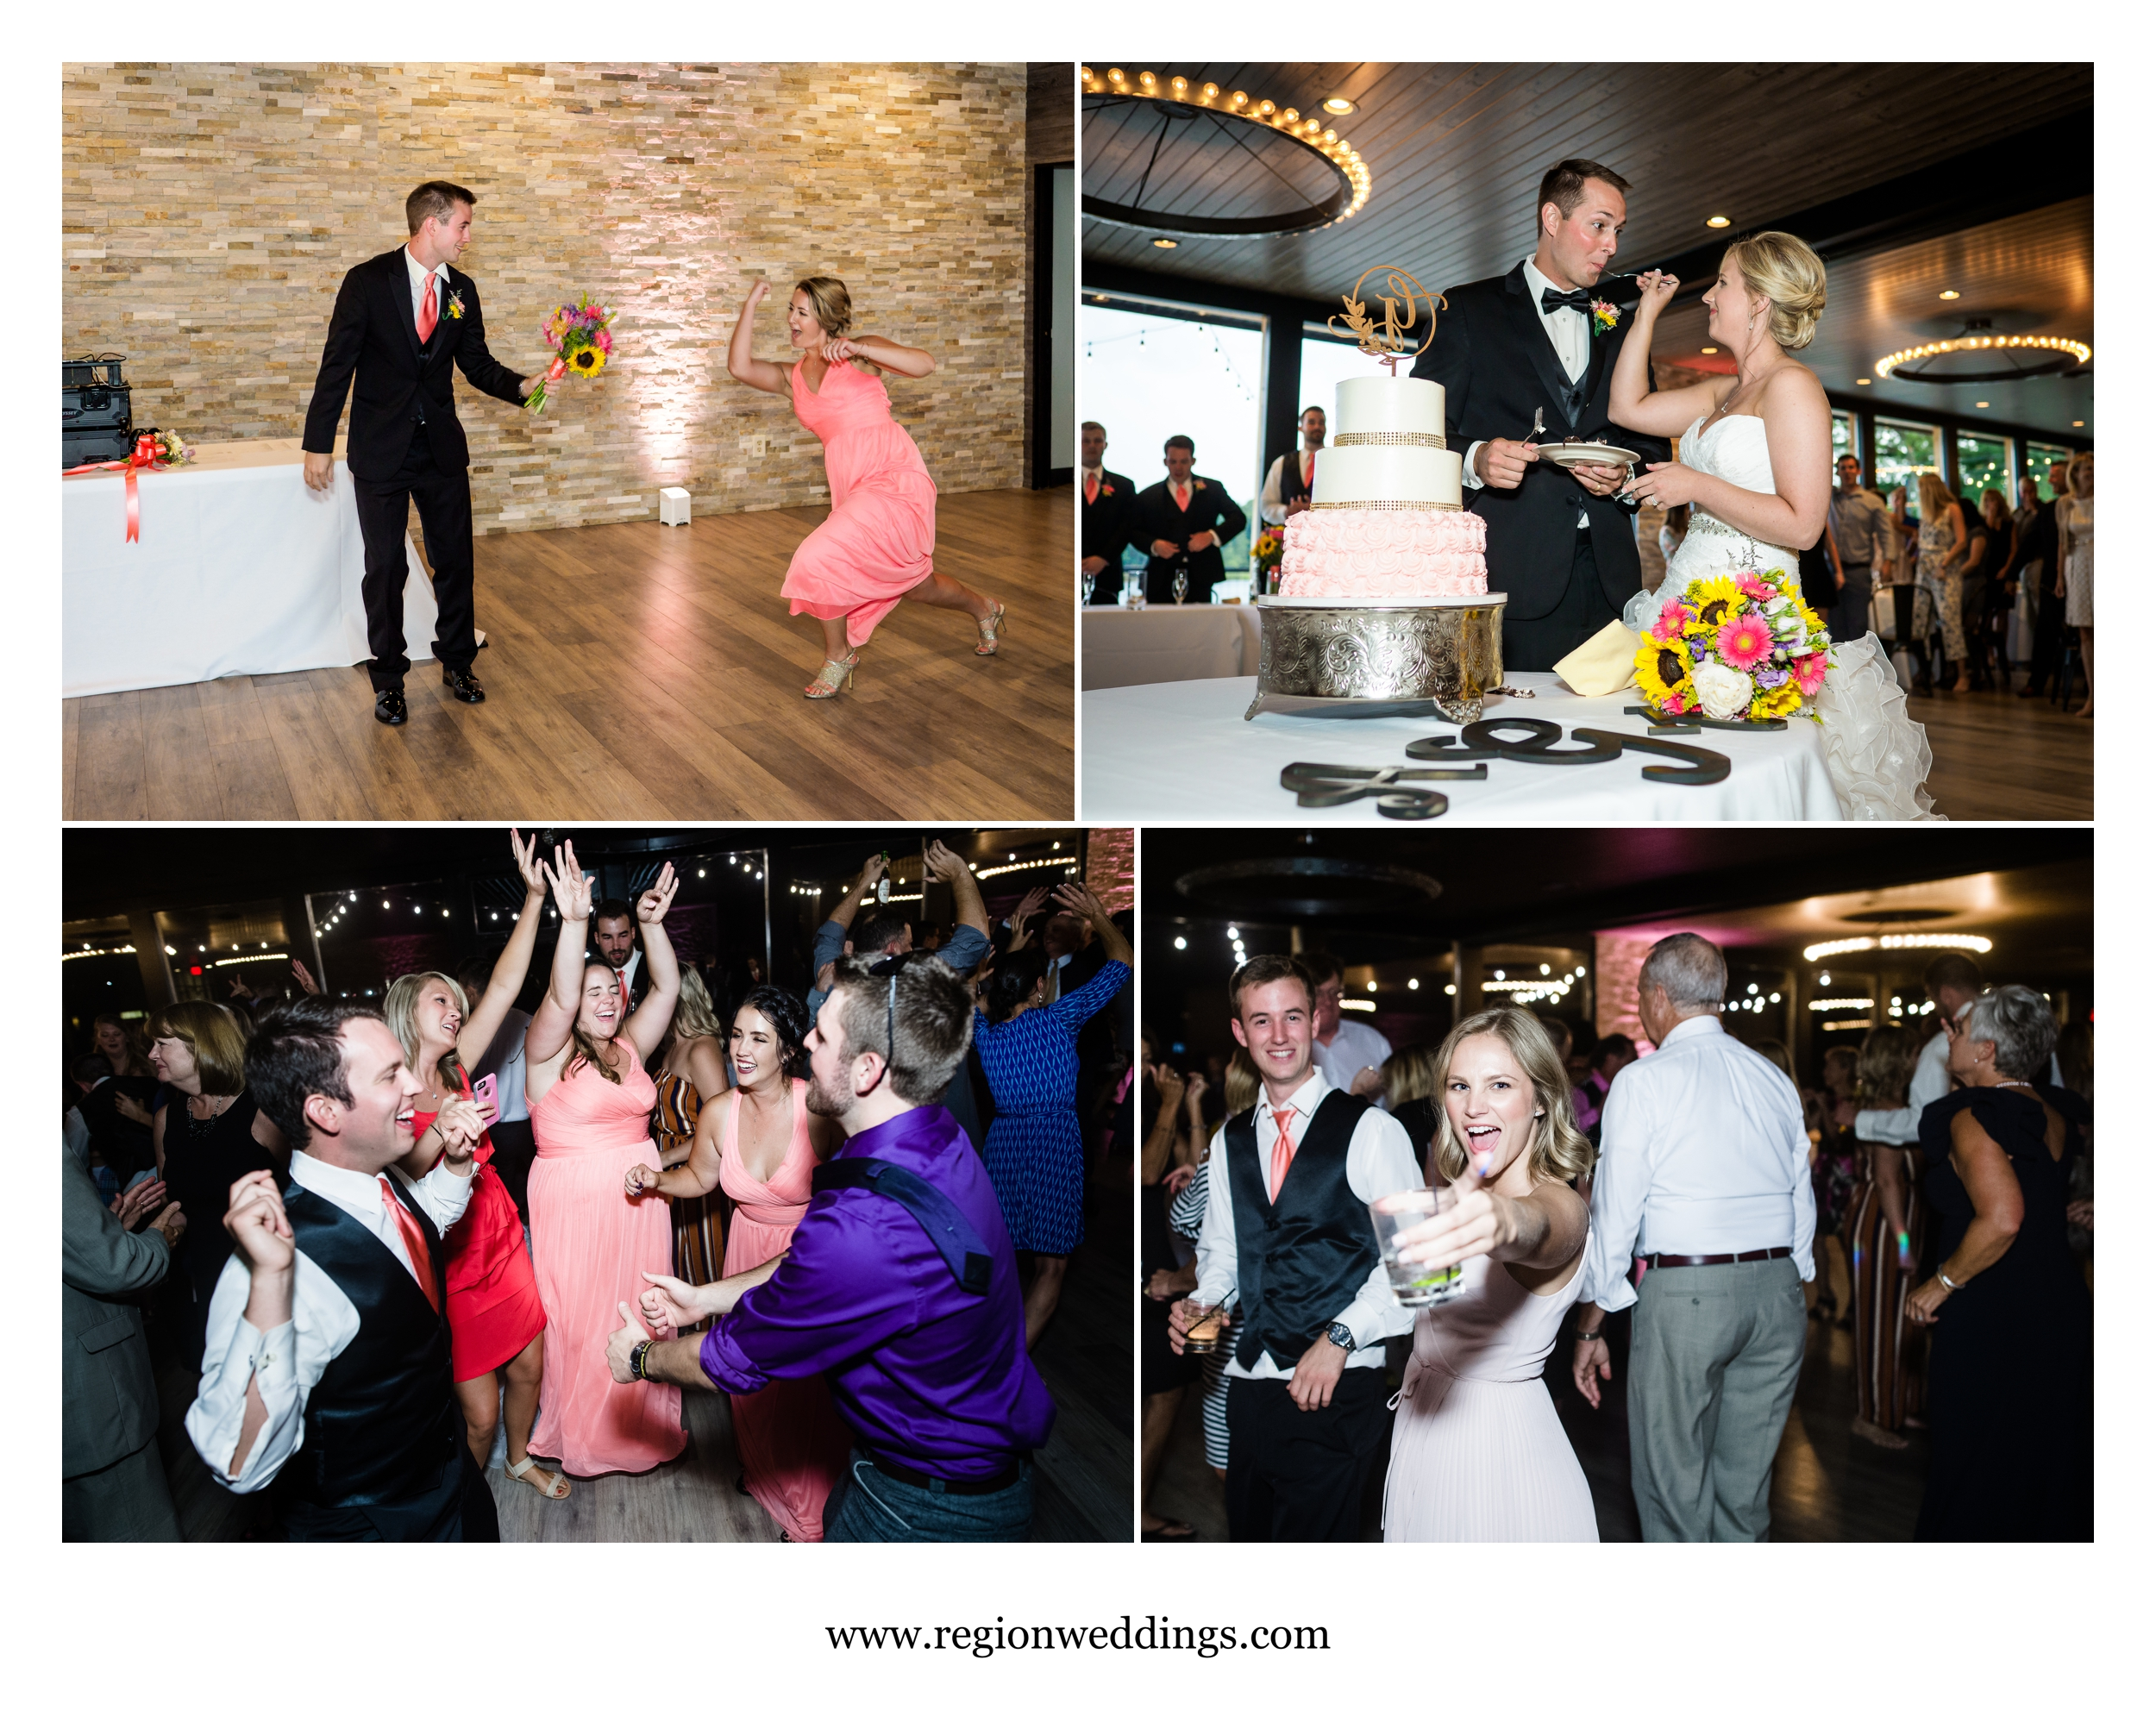 Wedding reception fun at The Allure On The Lake in Chesterton, Indiana.